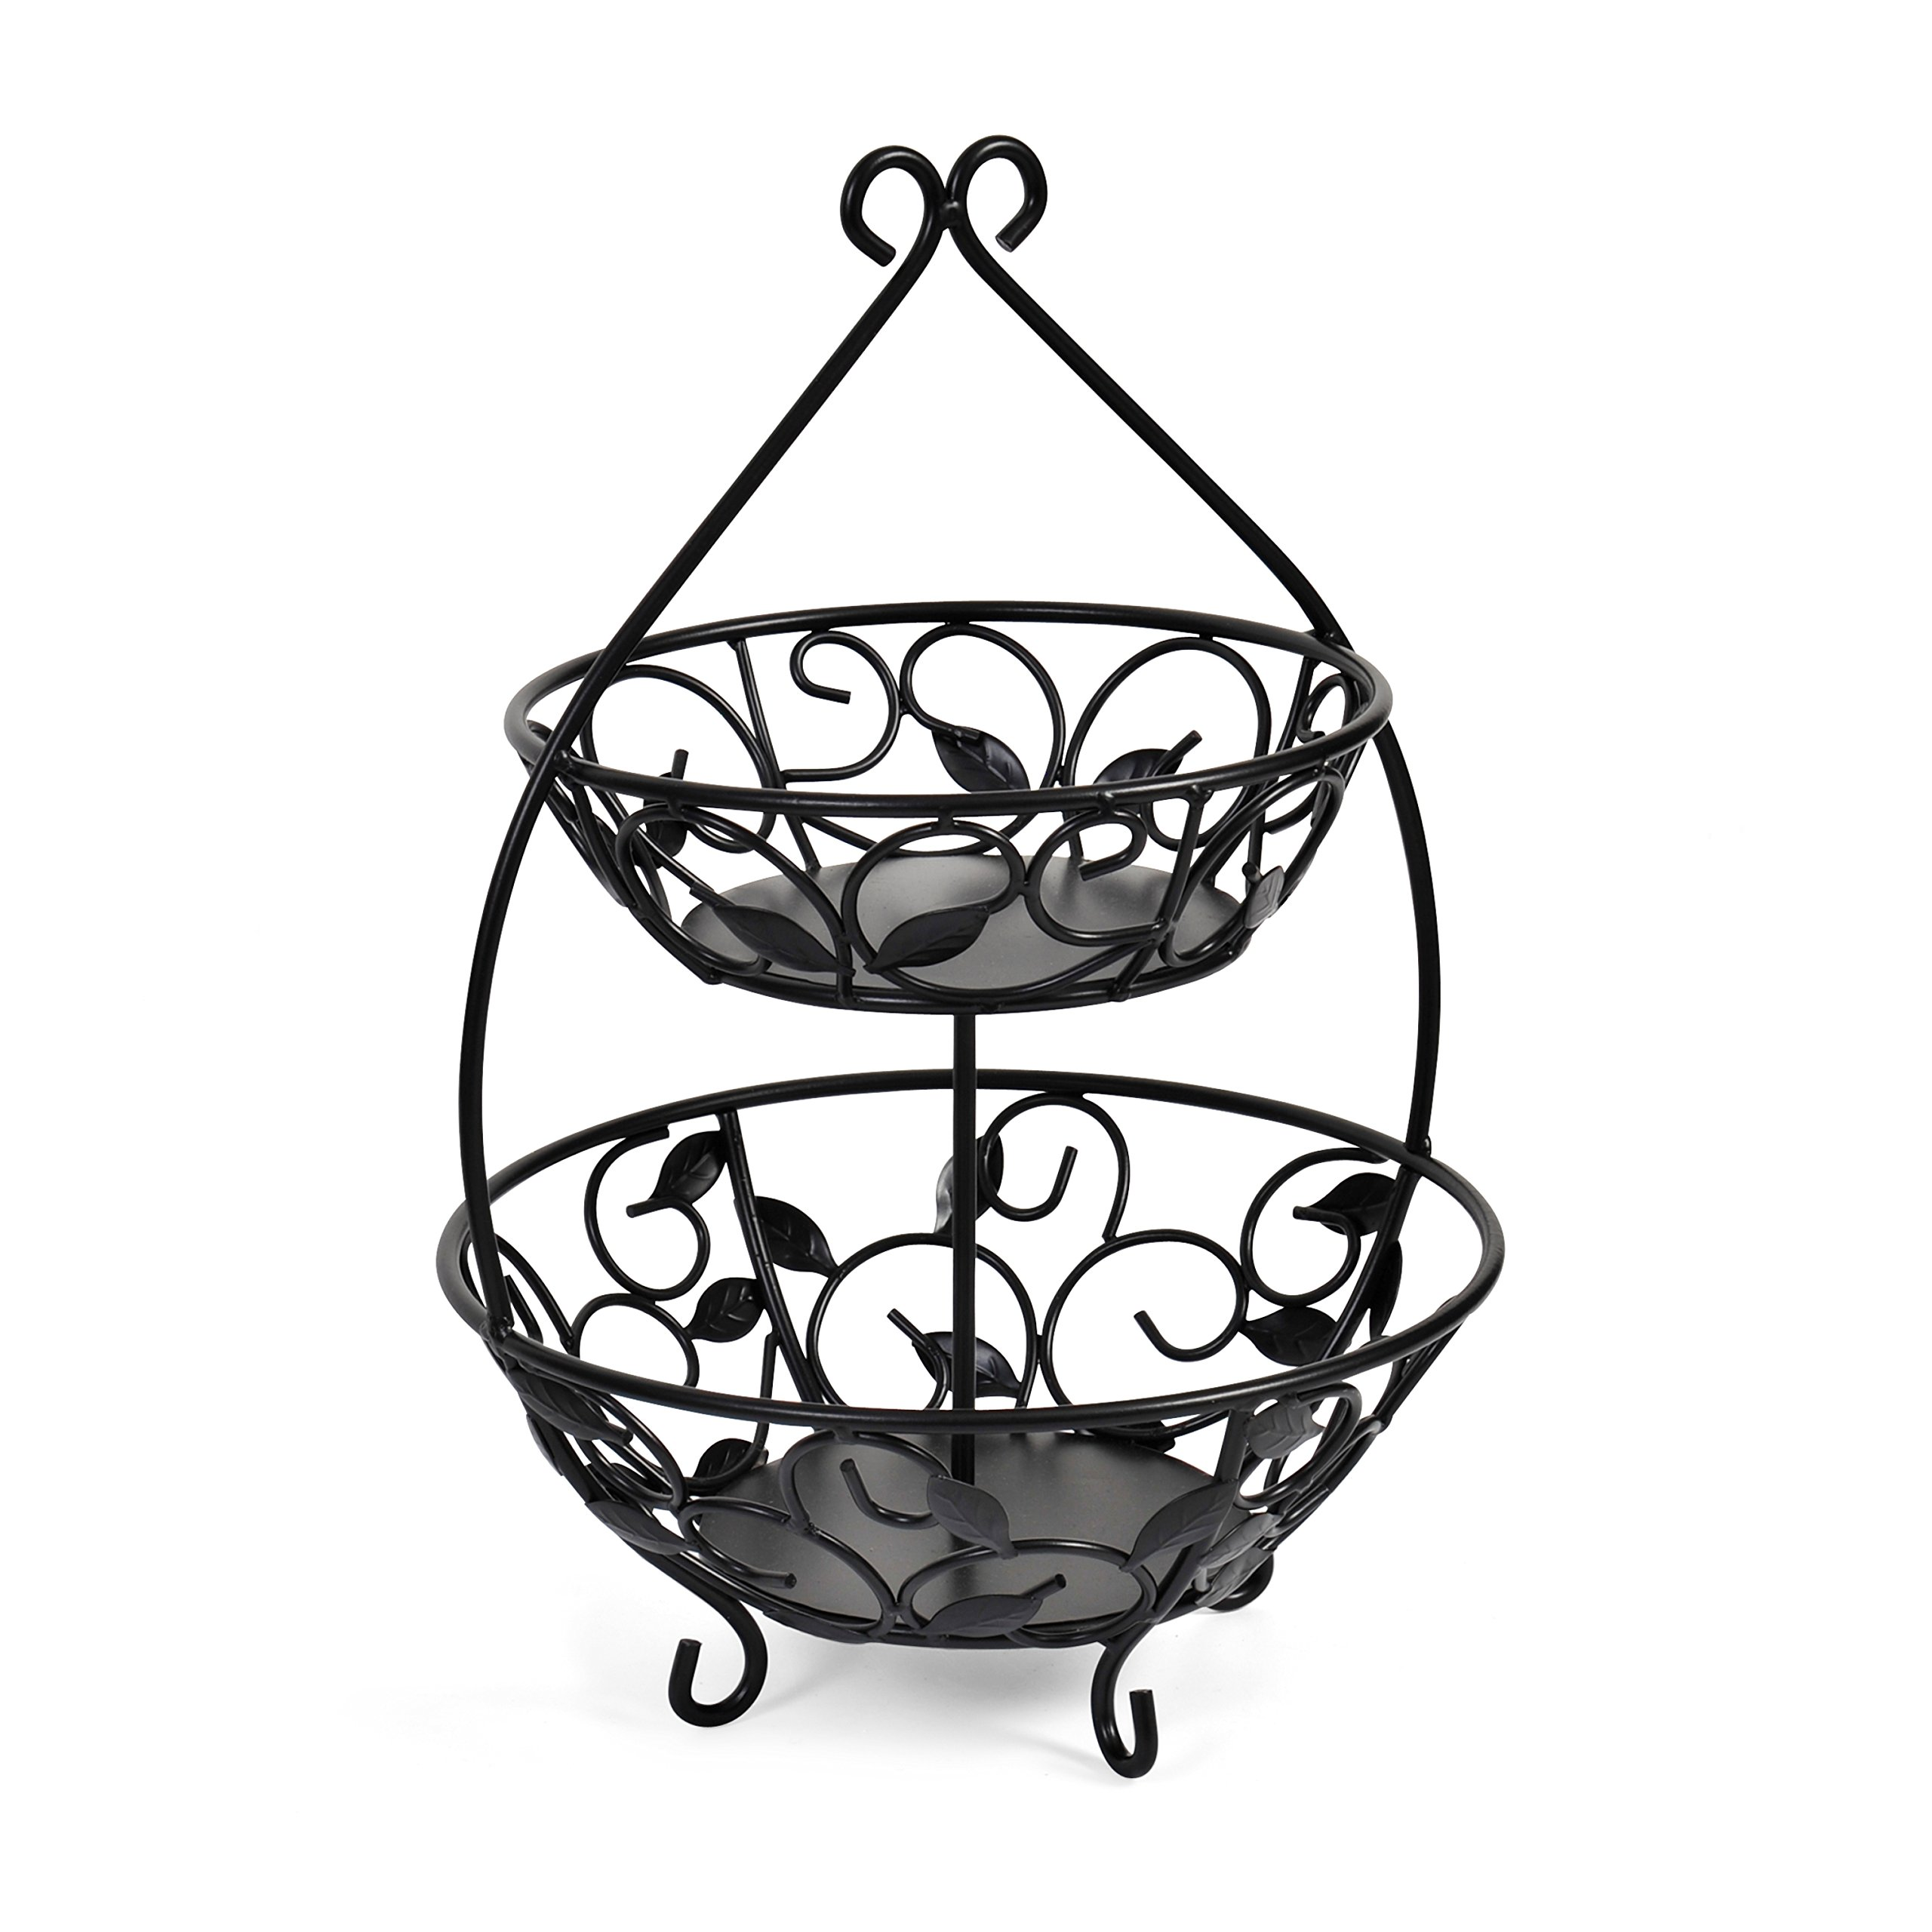 Pfaltzgraff Basics Leaf 2-Tier Wire Fruit Bowl, 12.75-Inch, Black  - 5148732